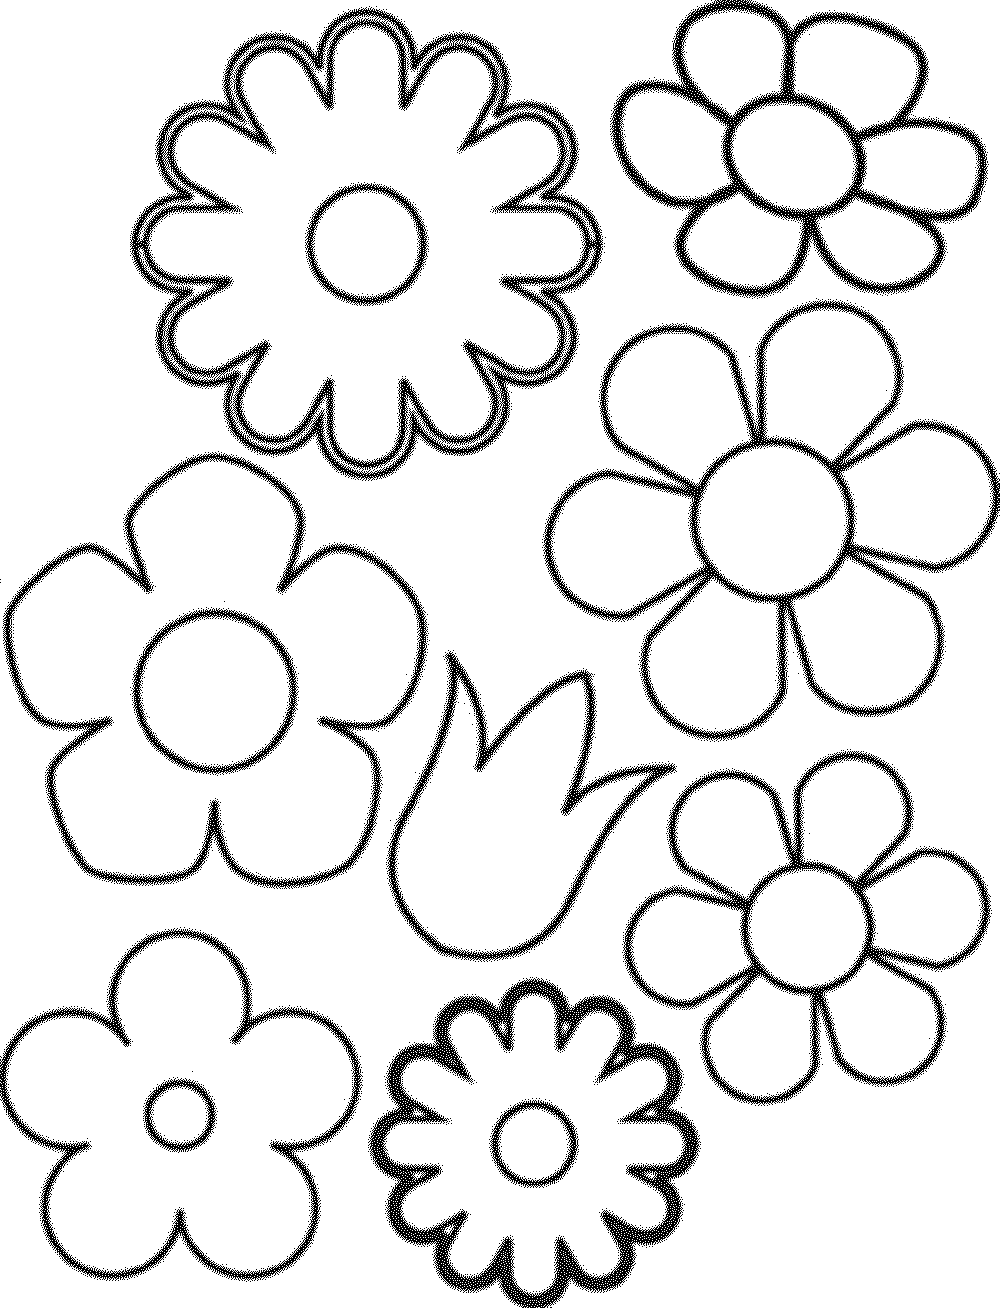 Print Download Some Common Variations Of The Flower Coloring Pages Flower Coloring Pages Flower Printable Mandala Coloring Pages